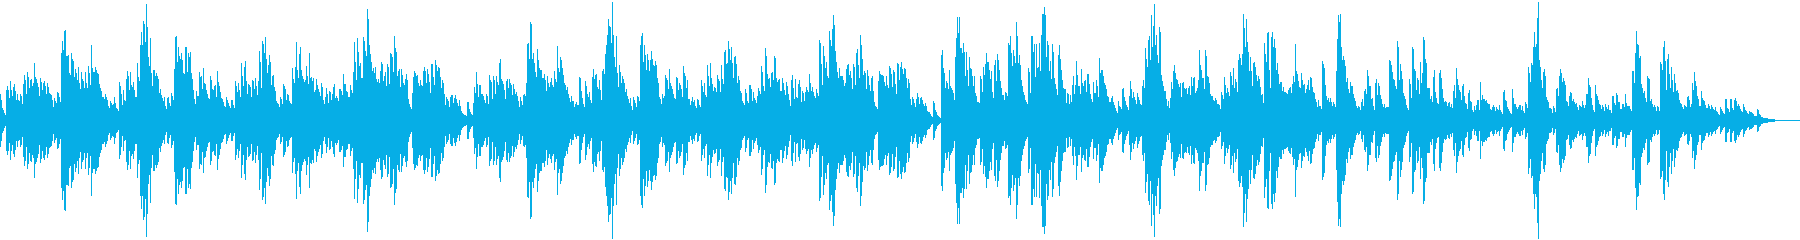 Beautiful slow piano song with beautiful melody's reproduced waveform